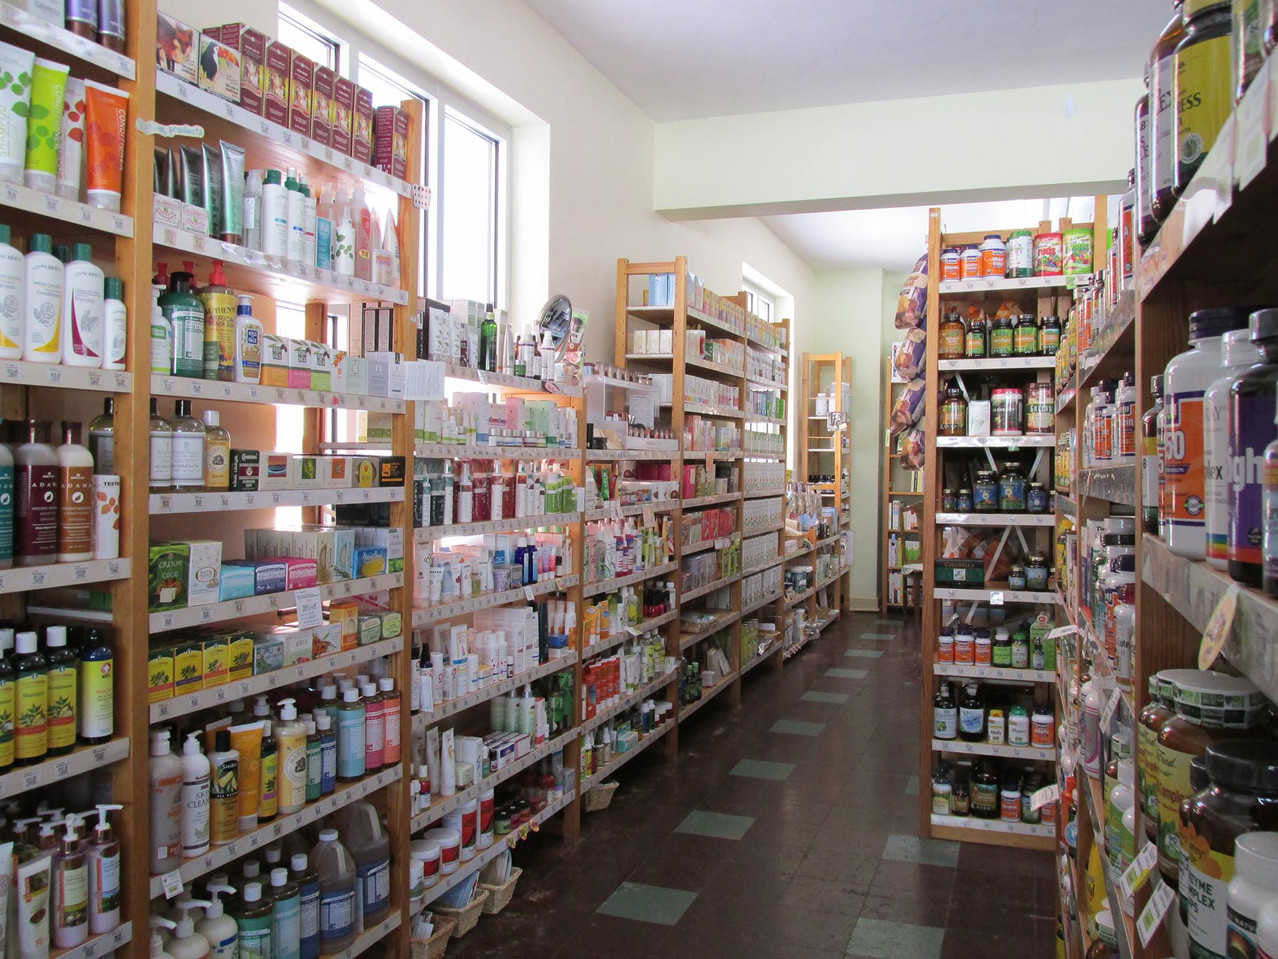 In 2013, the shop is looking clean and tidy with a new coat of paint